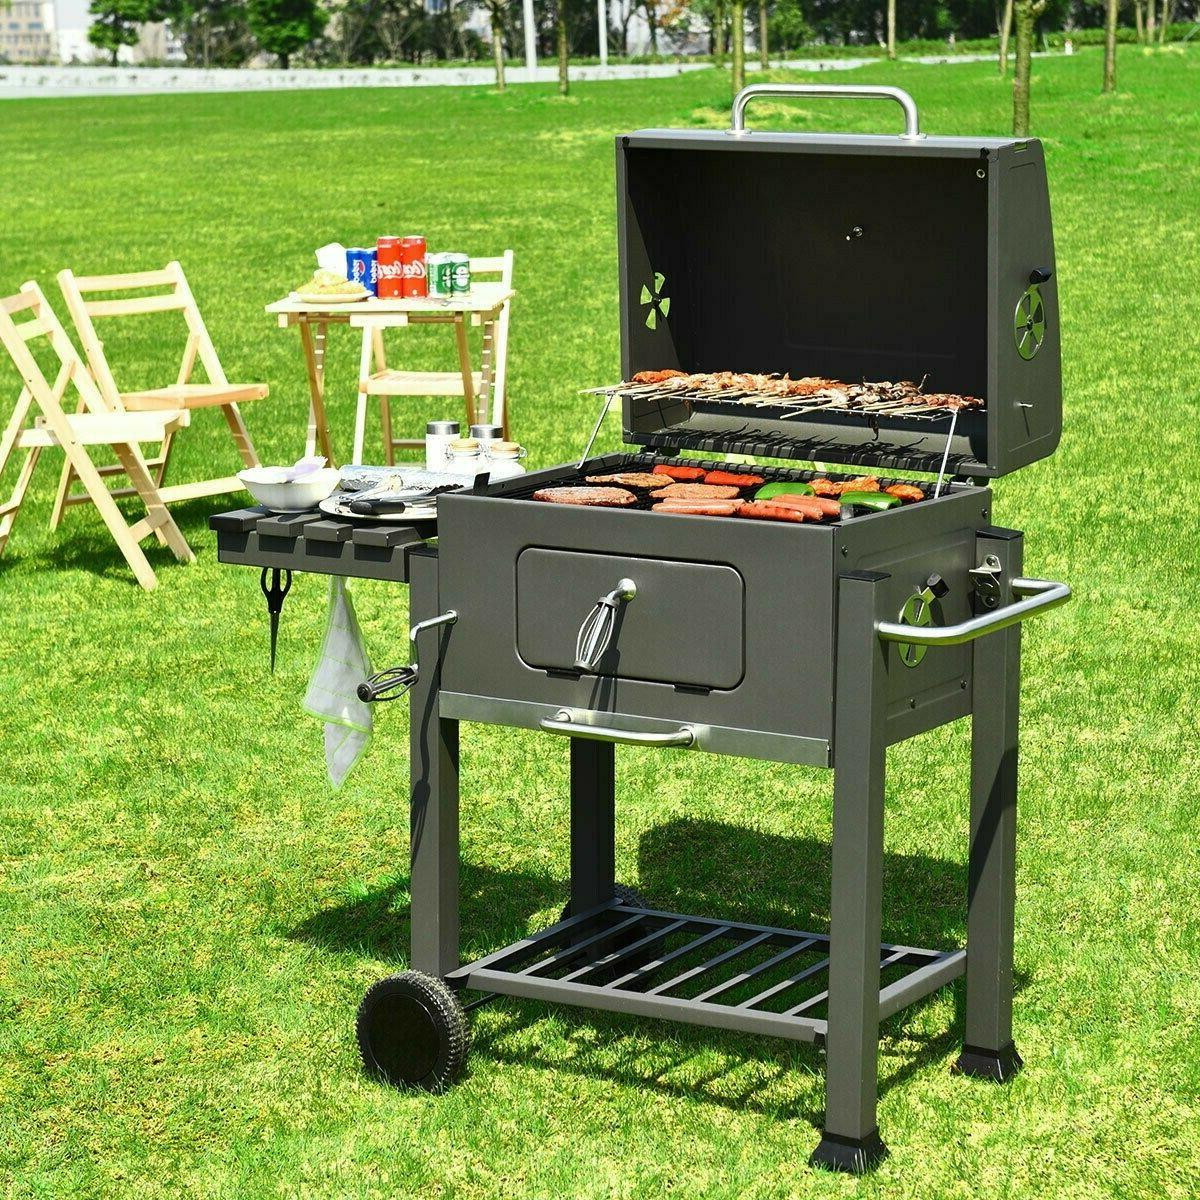 Costway Charcoal Grill BBQ Backyard Cooking